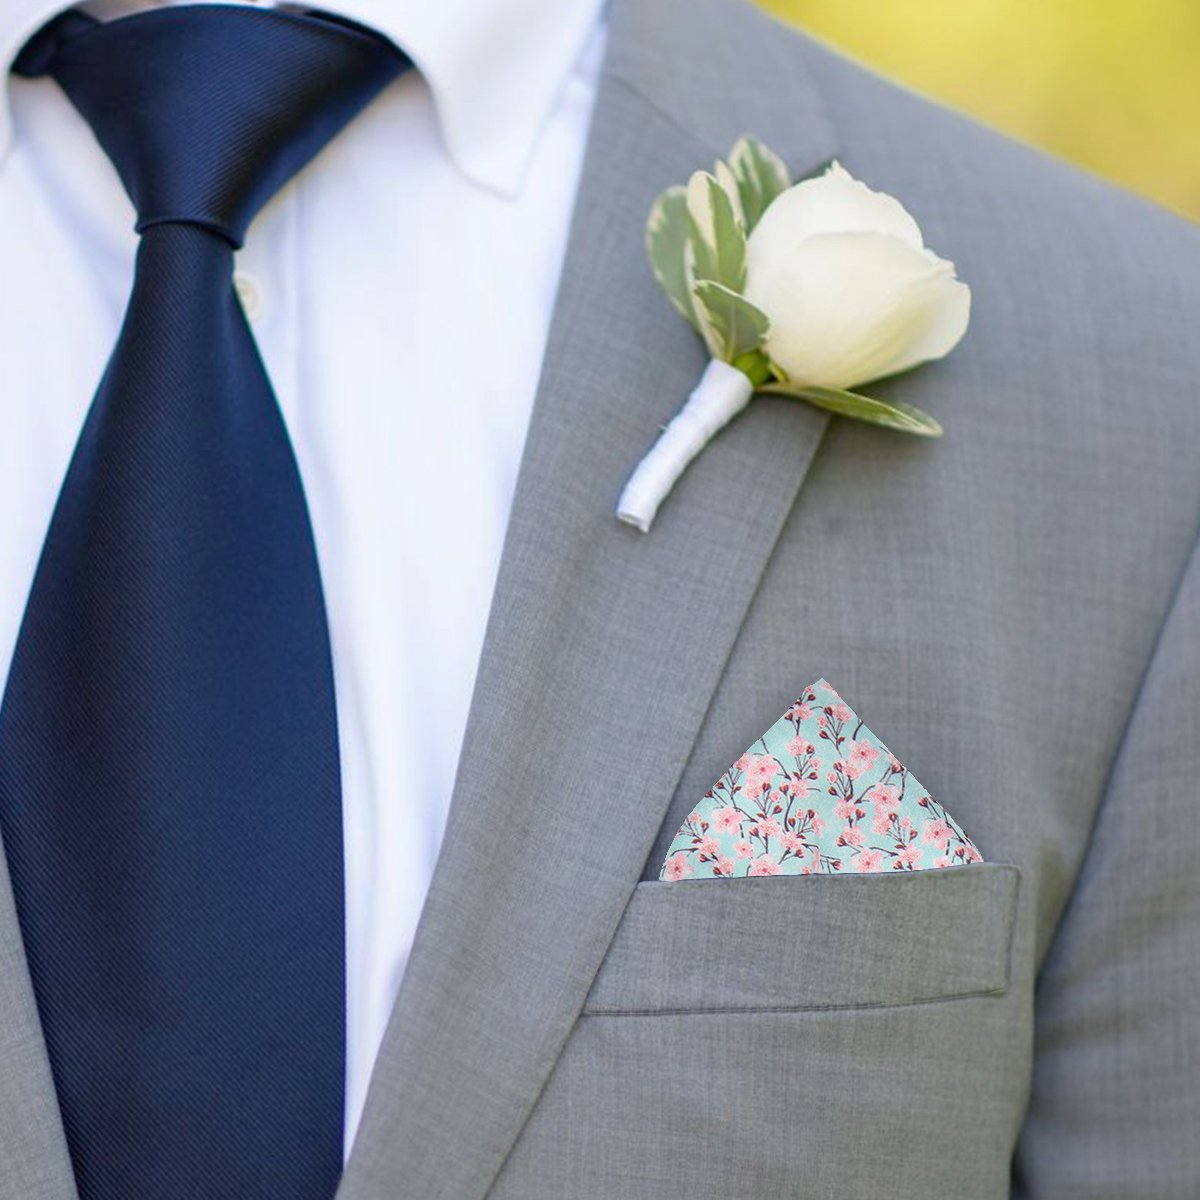 Mottistone in Pale Turquoise Pocket Square